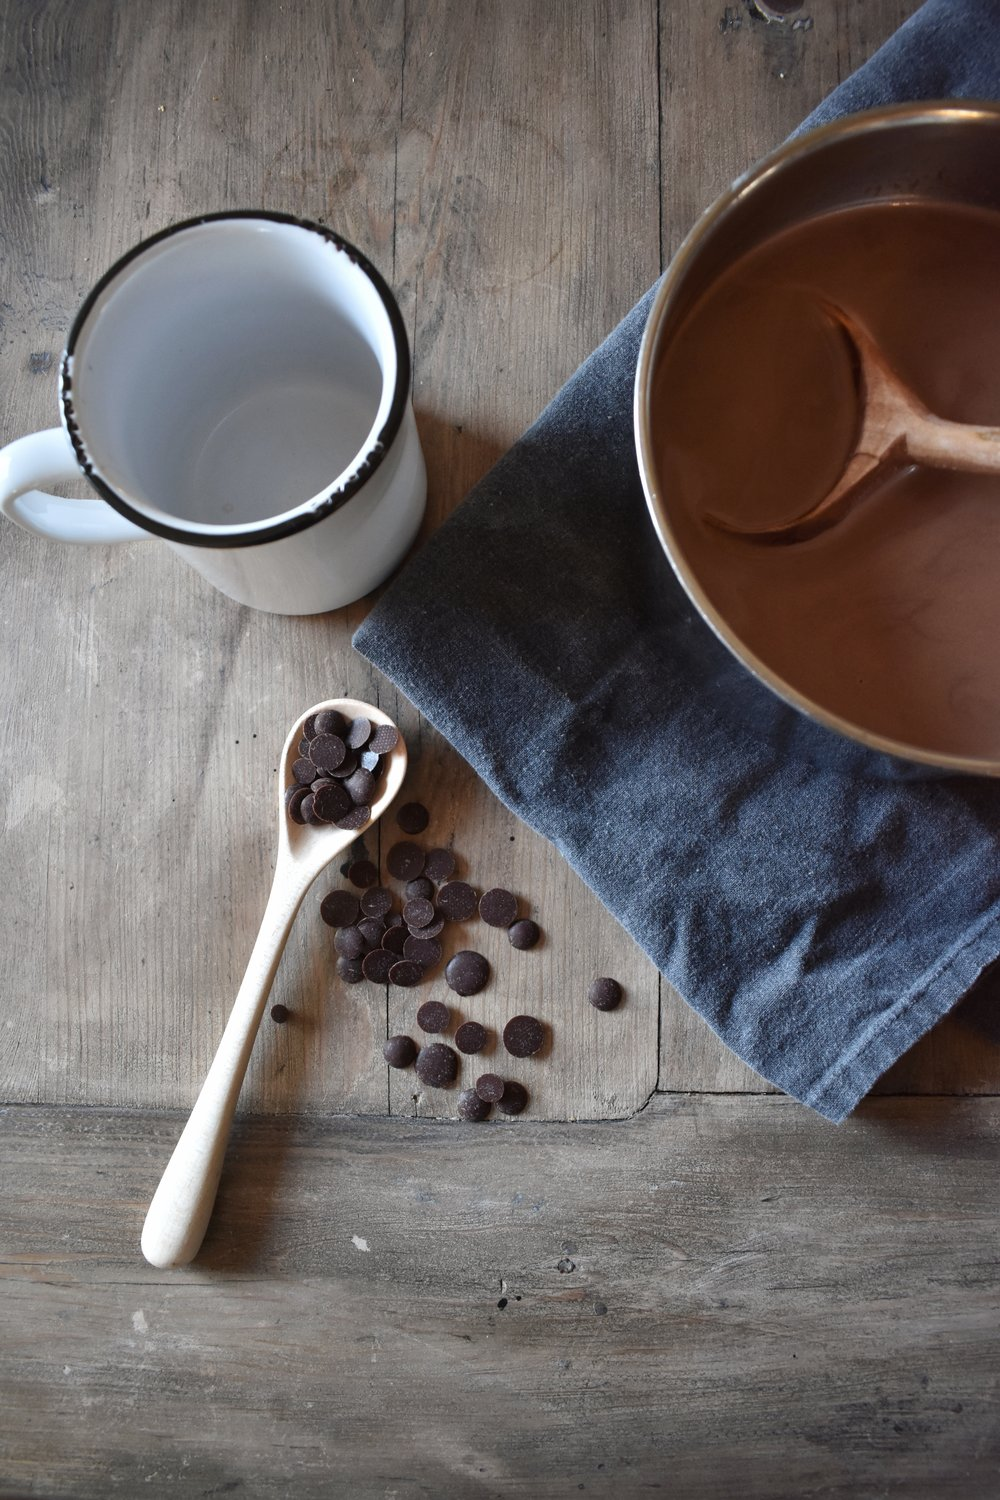 Healthy Hot Chocolate Recipe that is void of processed chemicals. Easy, Simple, Quick Recipe that is Paleo, Keto and THM friendly